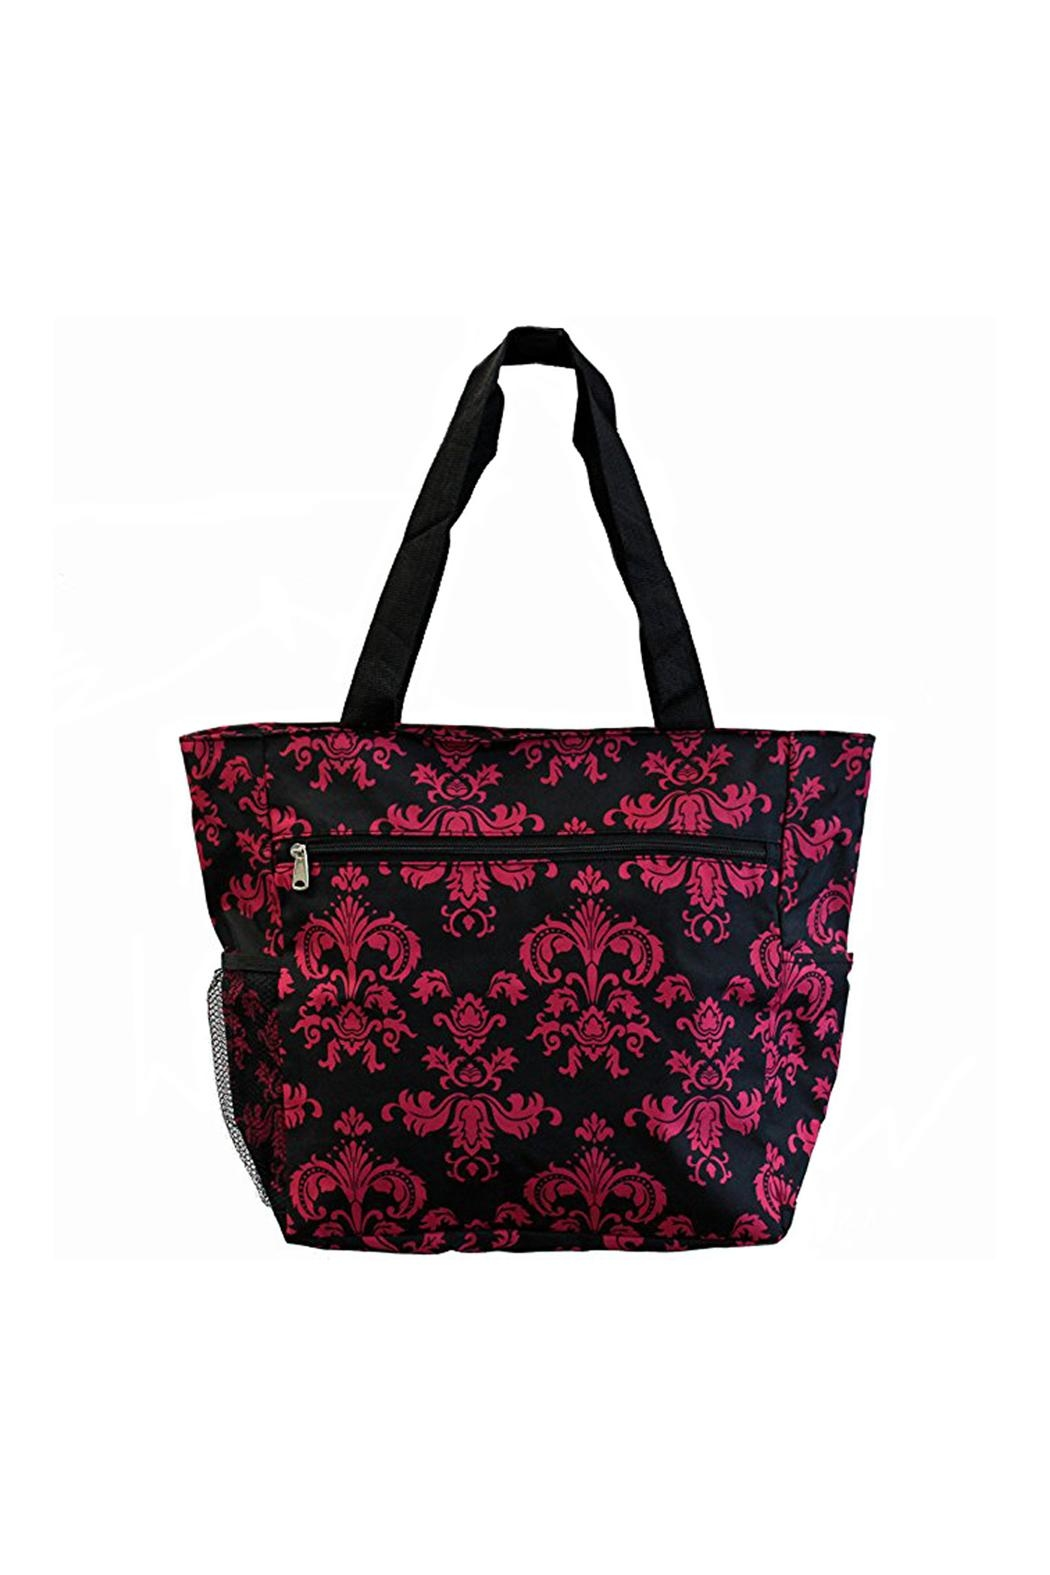 JChronicles Beach Tote Bags - Front Full Image